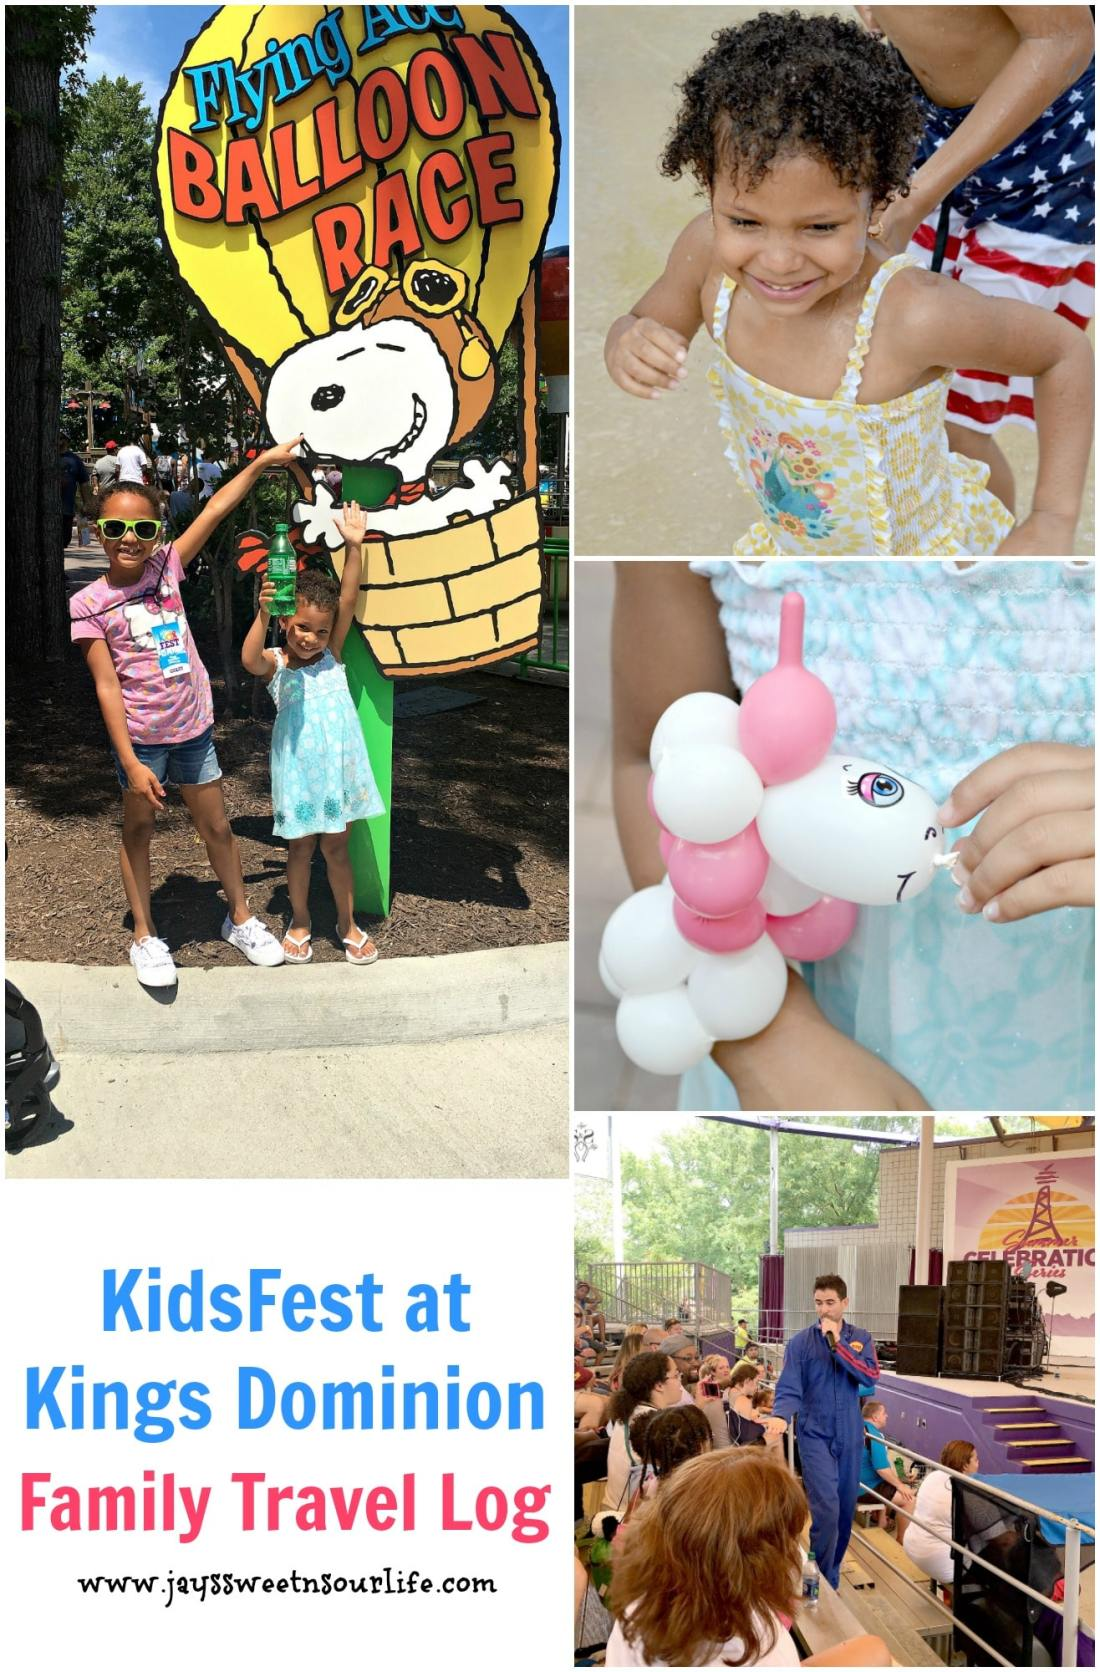 Kidsfest Shareable